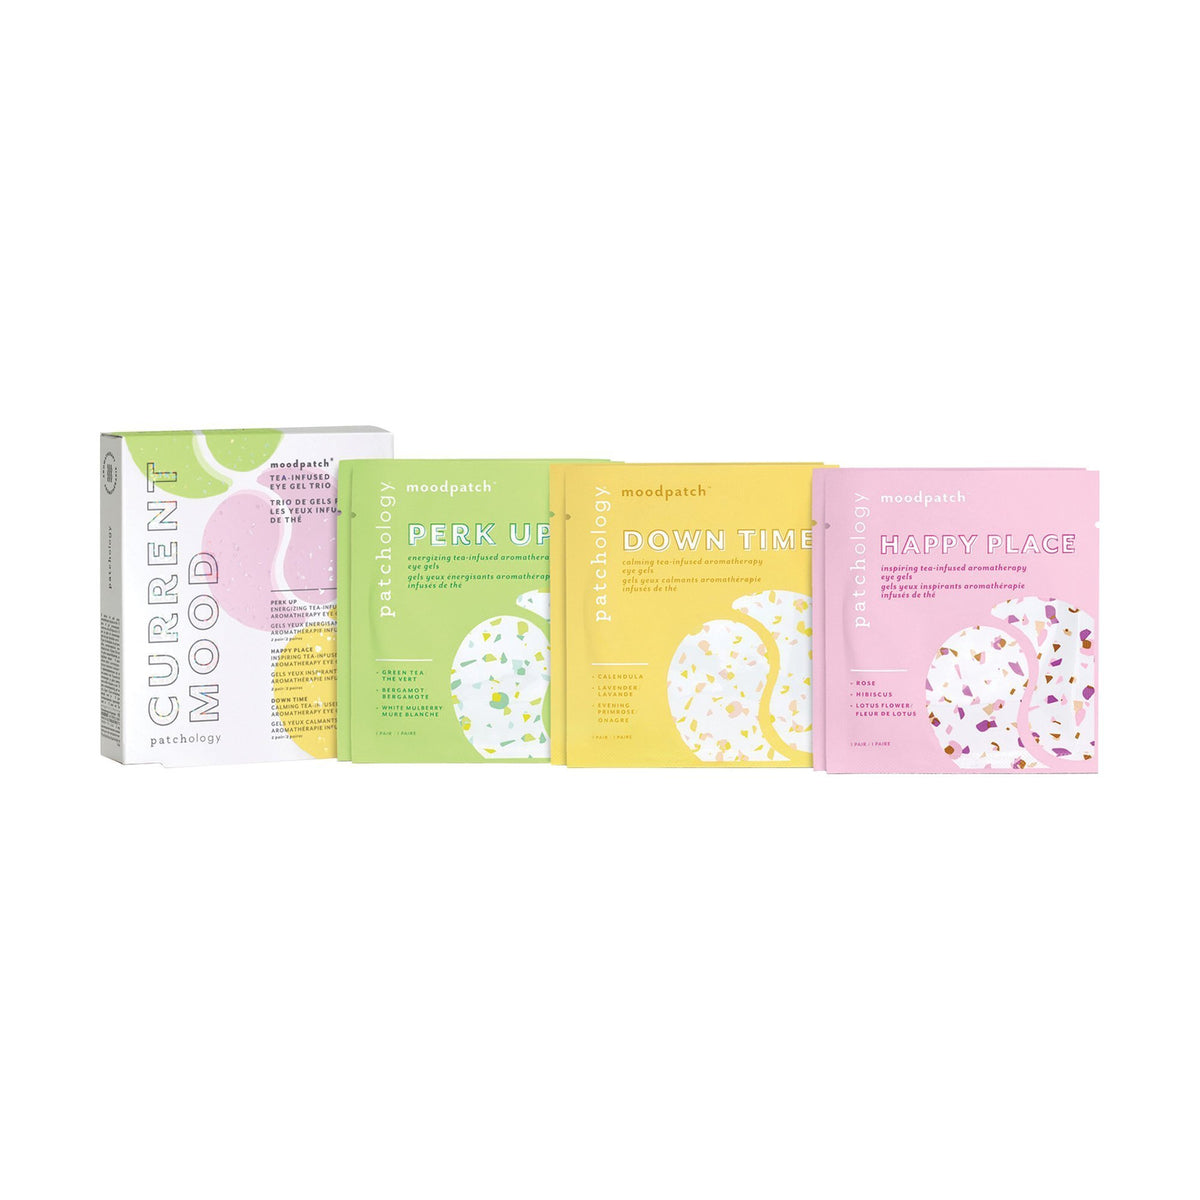 Patchology Moodpatch Current Mood Tea-Infused Eye Gel Trio